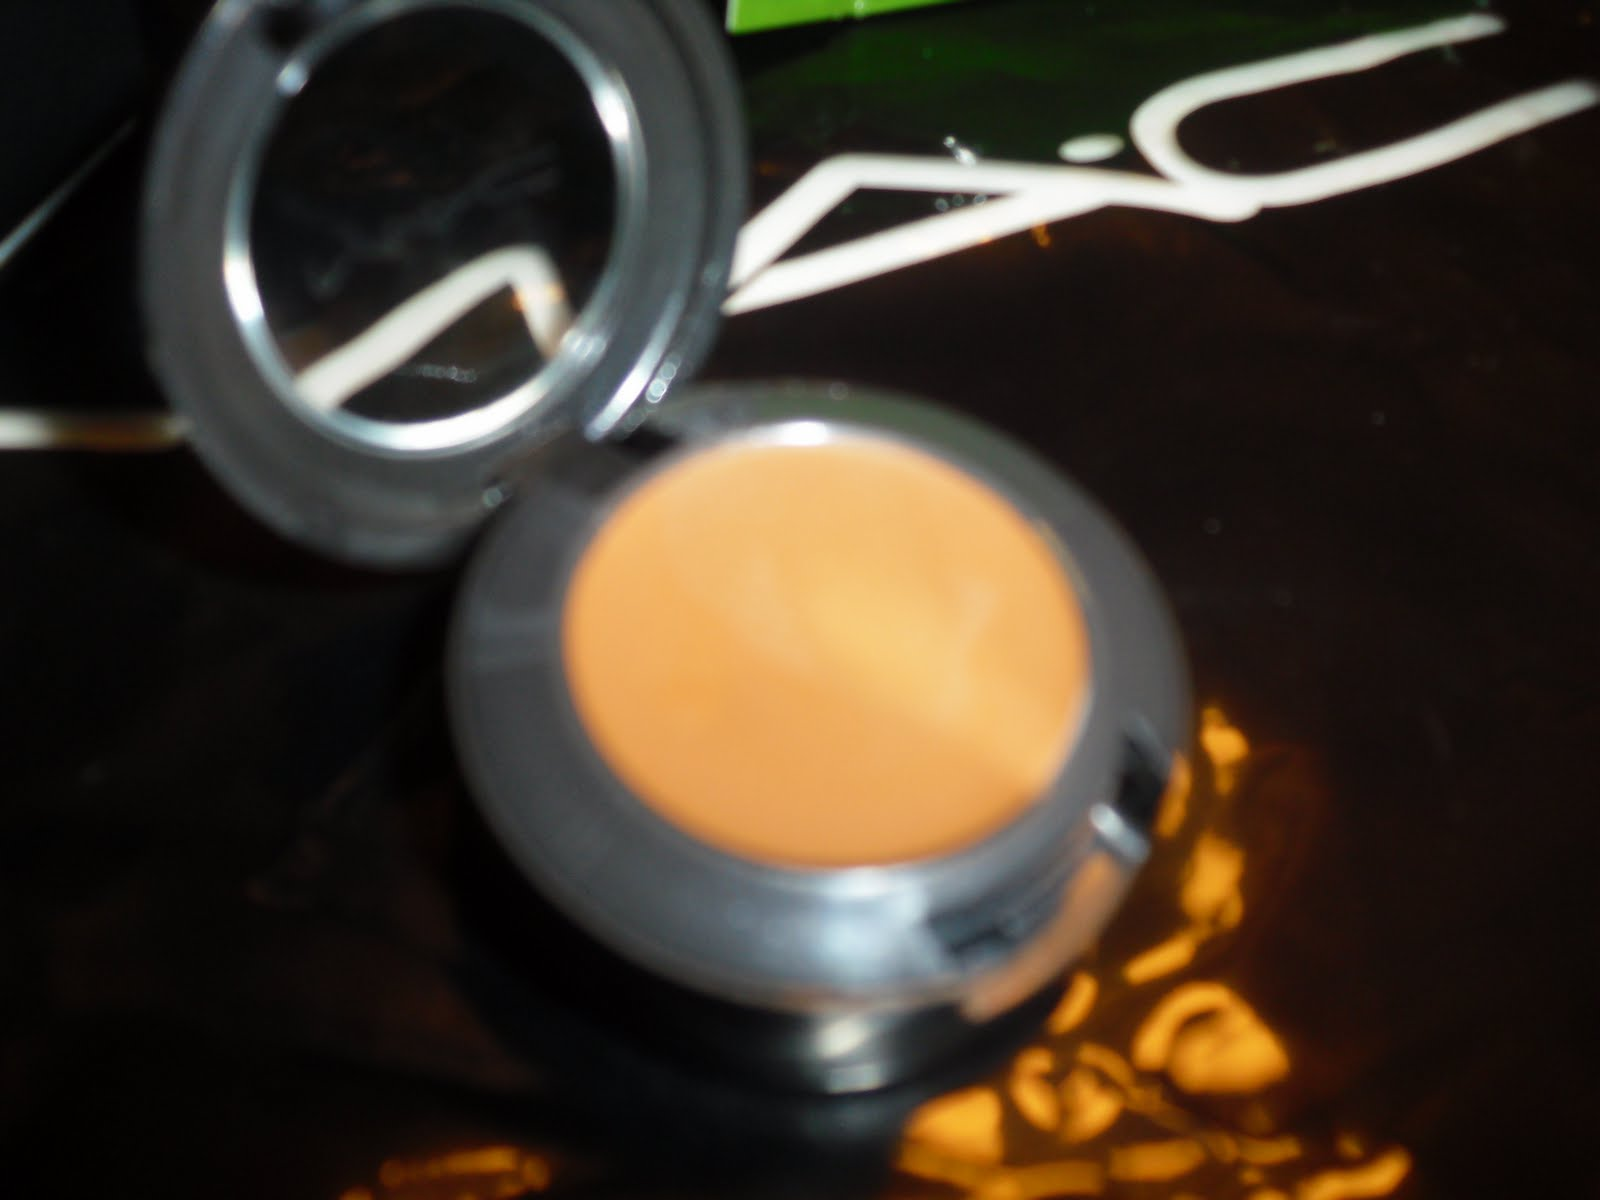 8514348bc78 It doesn t have a wet feeling like you d think. I love this bronzer because  it isn t glittery or gold. The color matches well with my complexion.